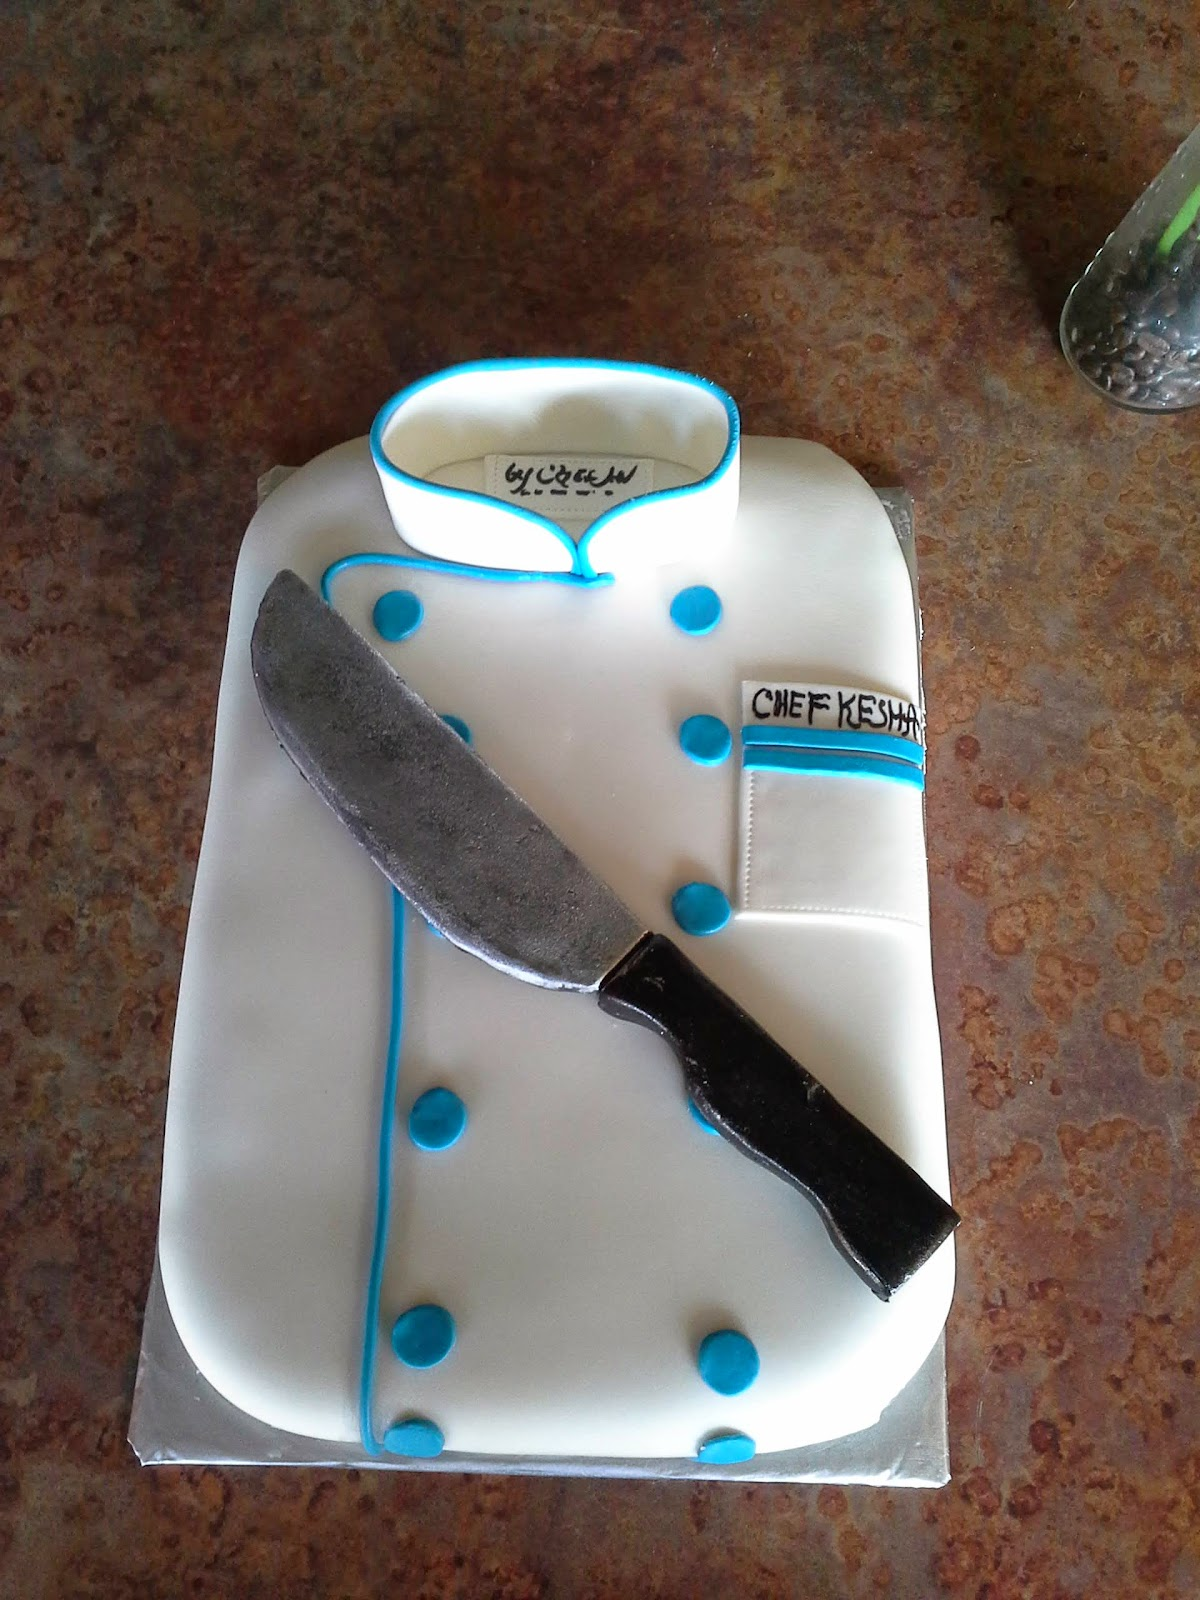 CAFE AROMAS: Chef Coat with Knife Cake